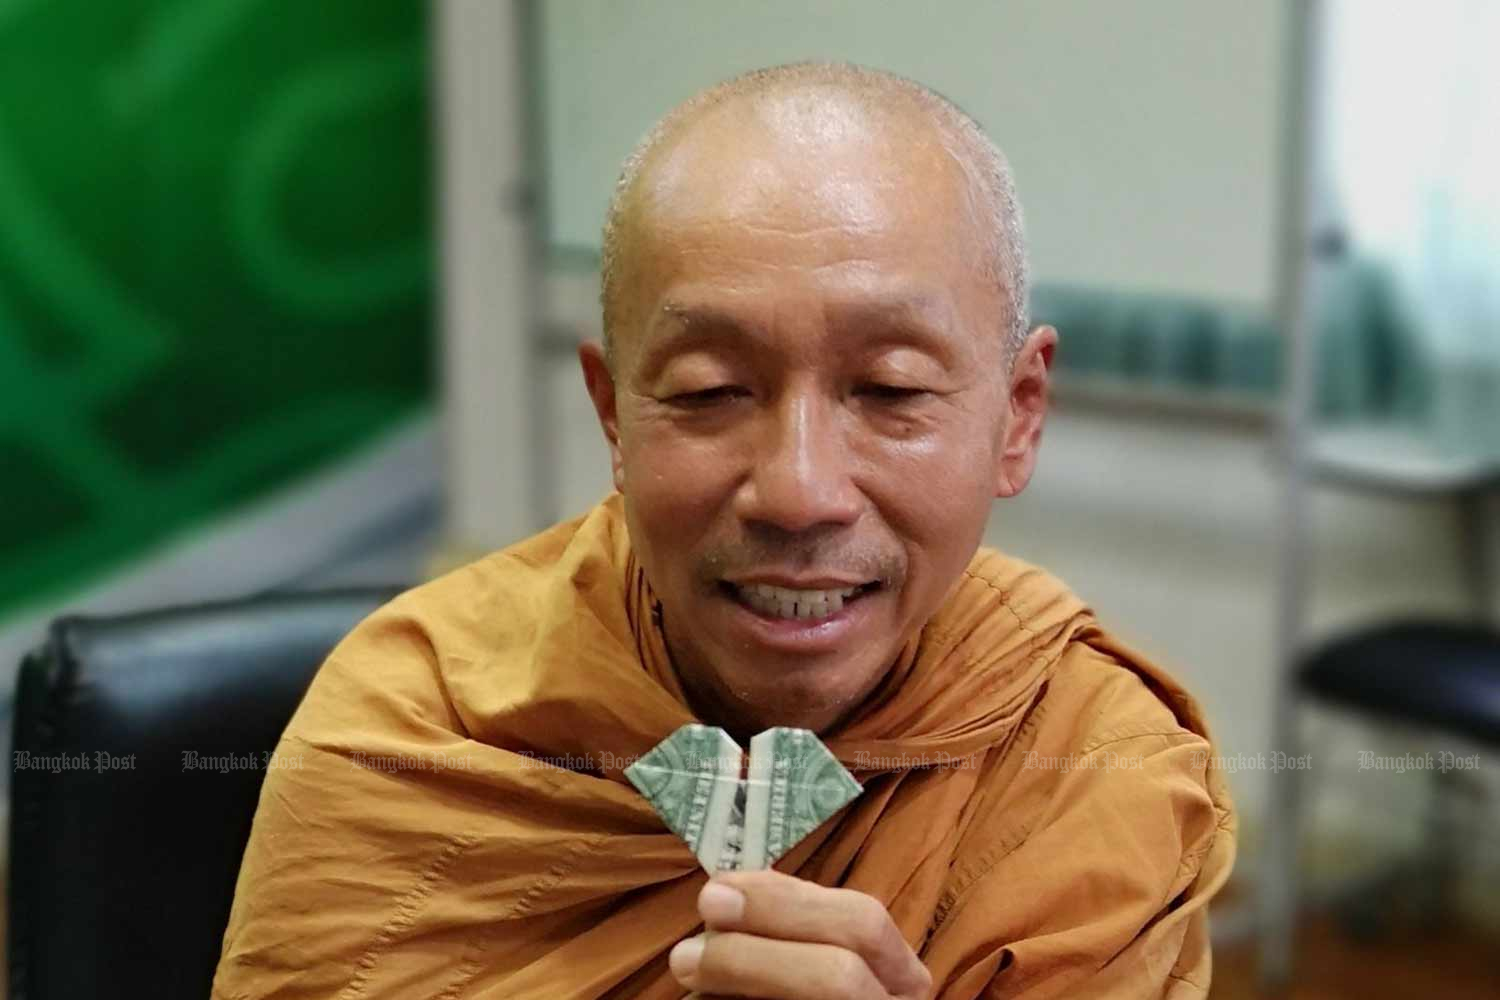 Phra Sutham Nateetong shows a one-dollar banknote folded into a heart shape he received from a resident in New Mexico as a souvenir. He passed on this souvenir to the Thai Journalists Association in Bangkok where he visited on Thursday. (Photo by Kornchanok Raksaseri)